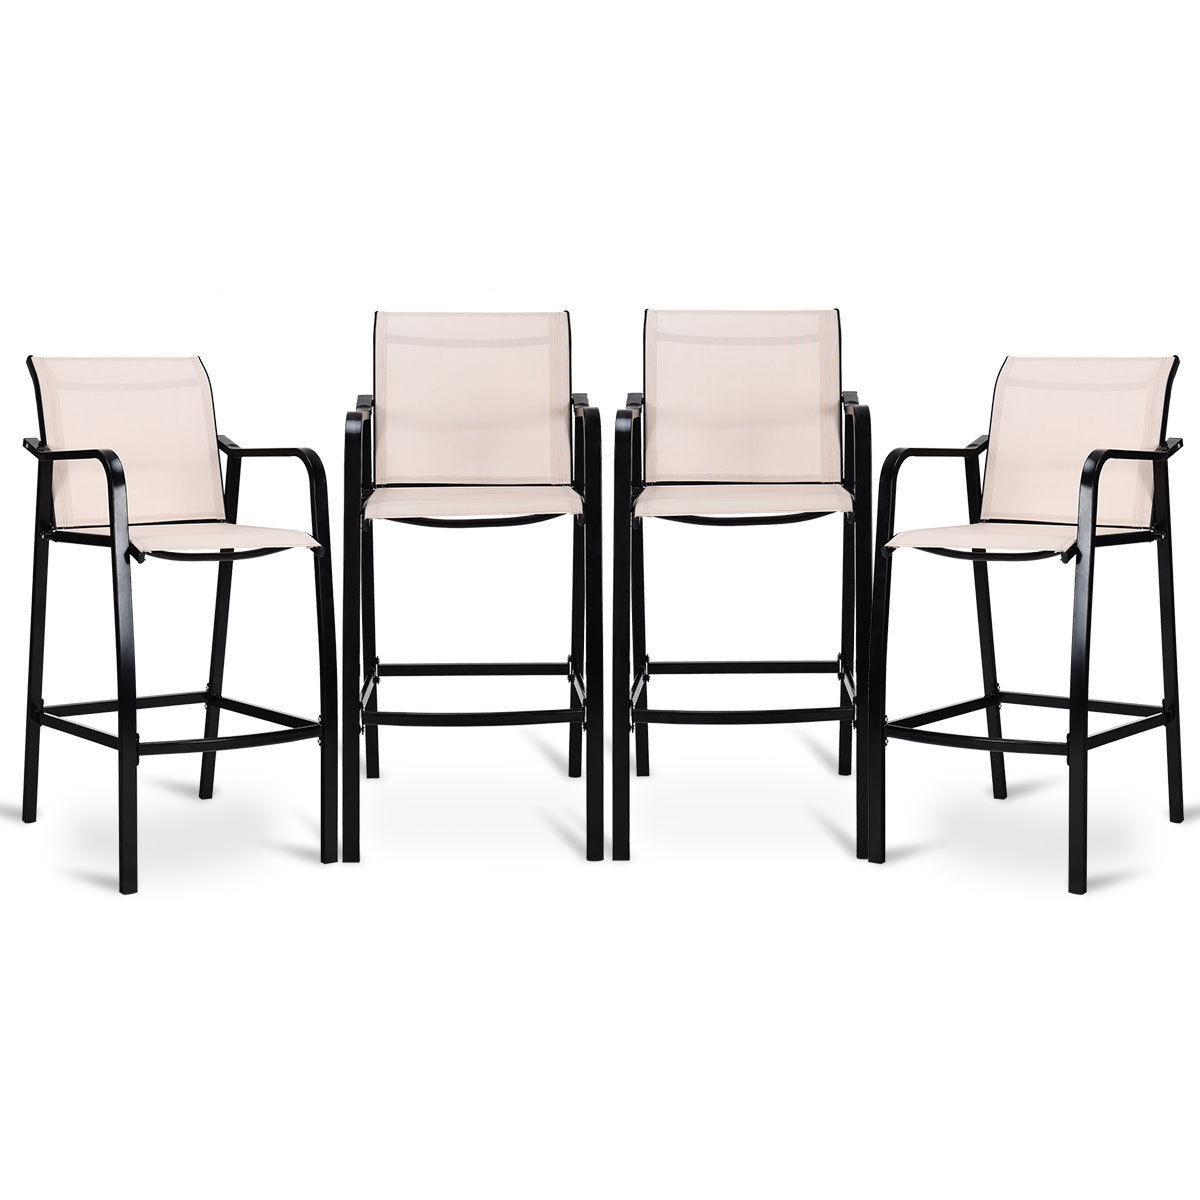 Costway 4 PCS Counter Height Stool Patio Chair Steel Frame Leisure Dining Bar Chair